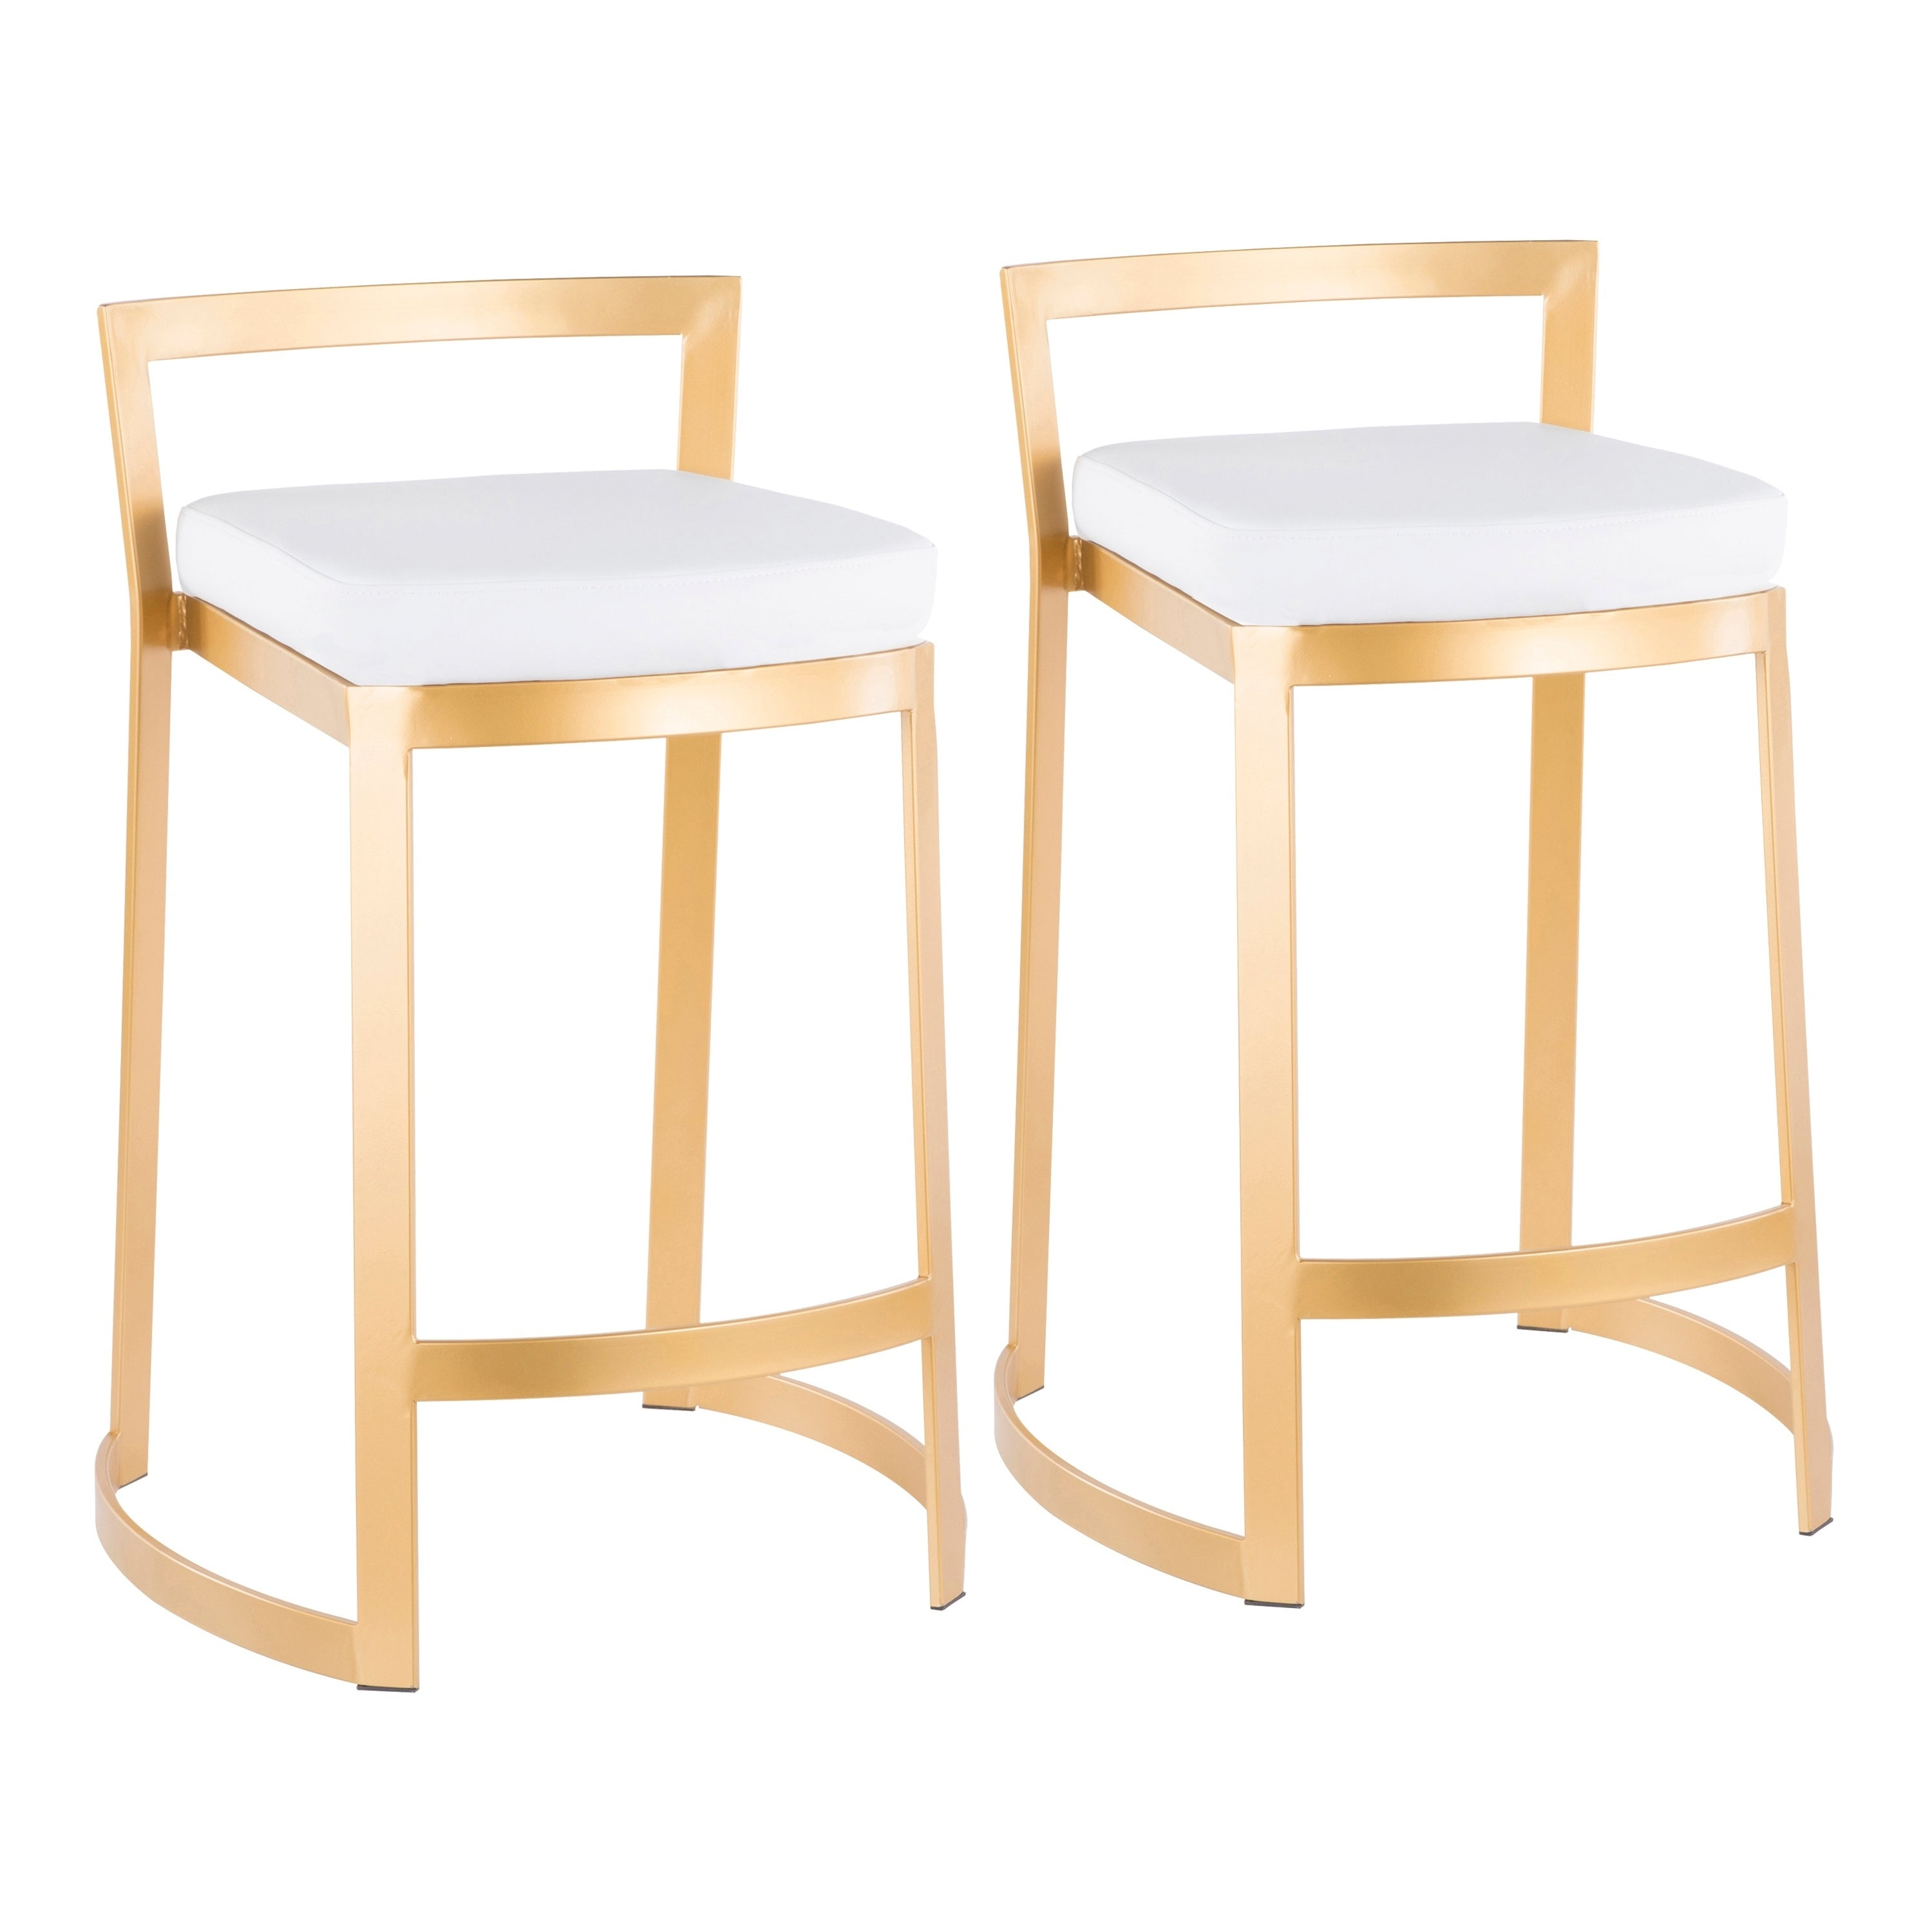 Shop fuji dlx gold counter stool set of 2 on sale free shipping today overstock com 23125577